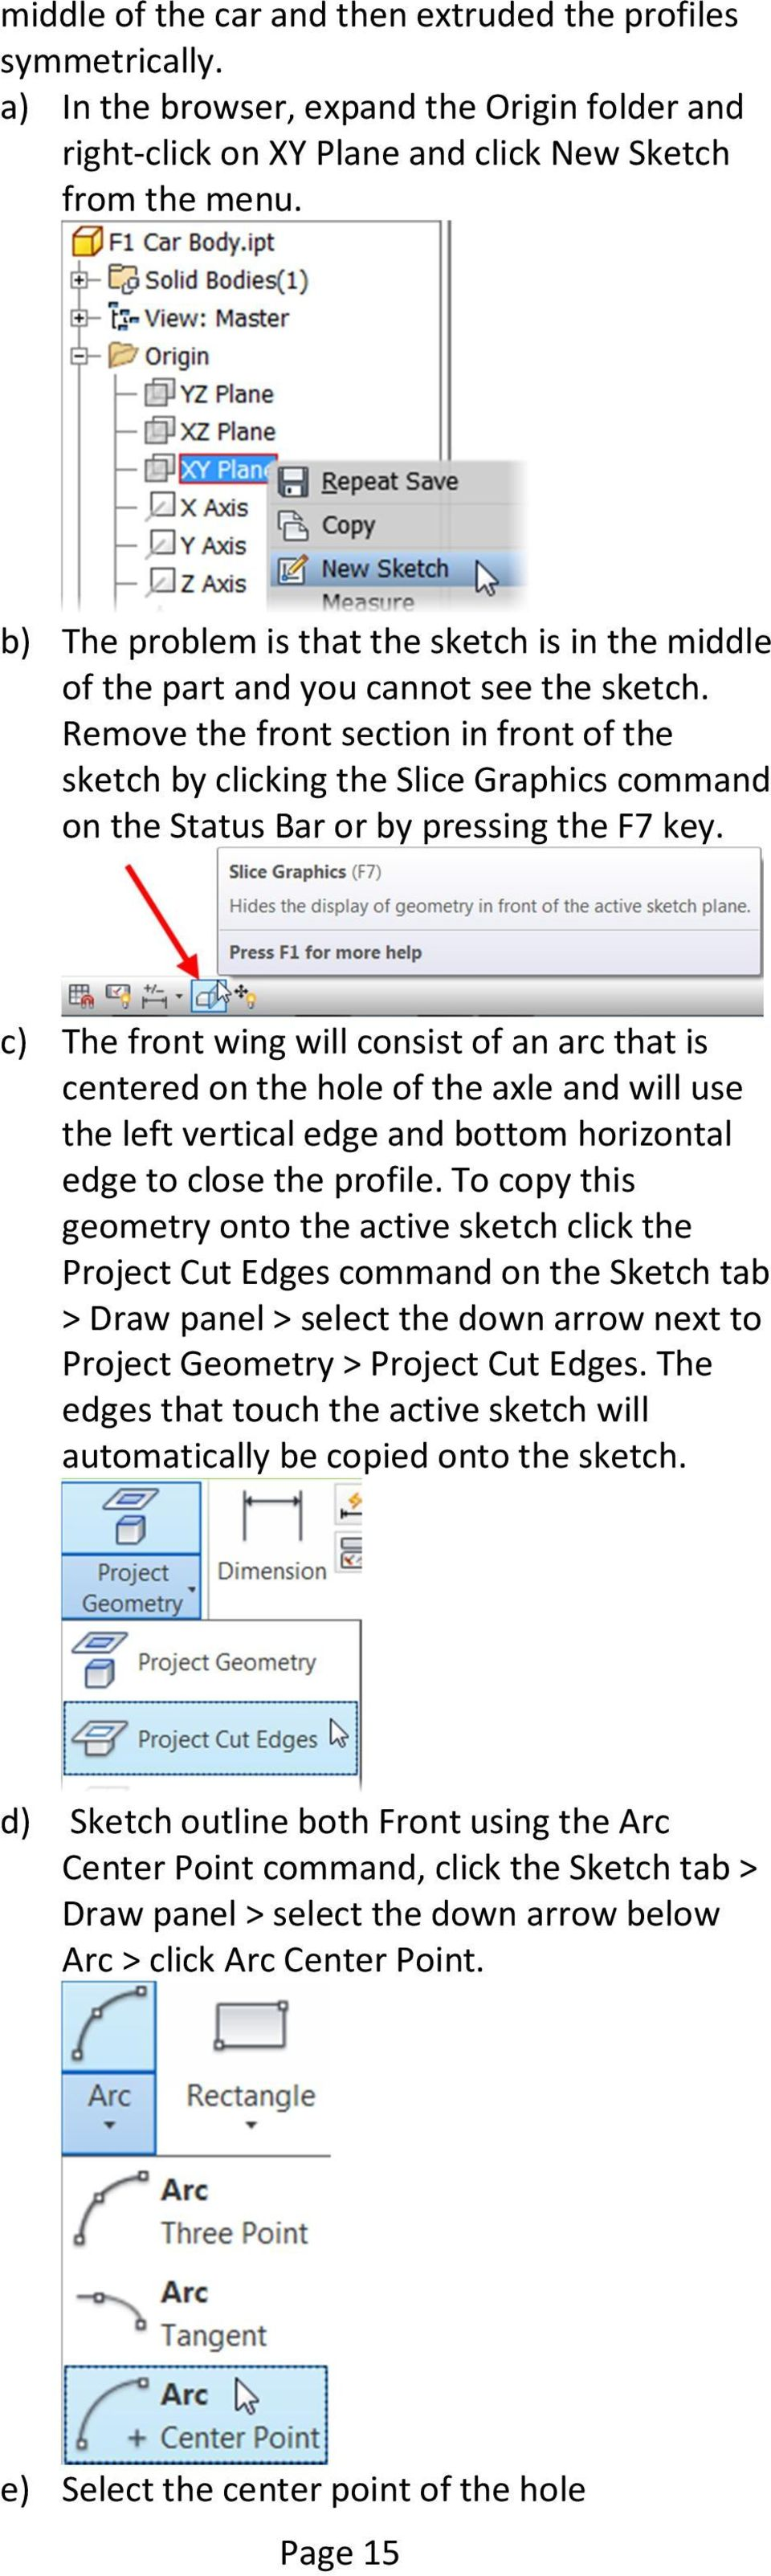 Remove the front section in front of the sketch by clicking the Slice Graphics command on the Status Bar or by pressing the F7 key.